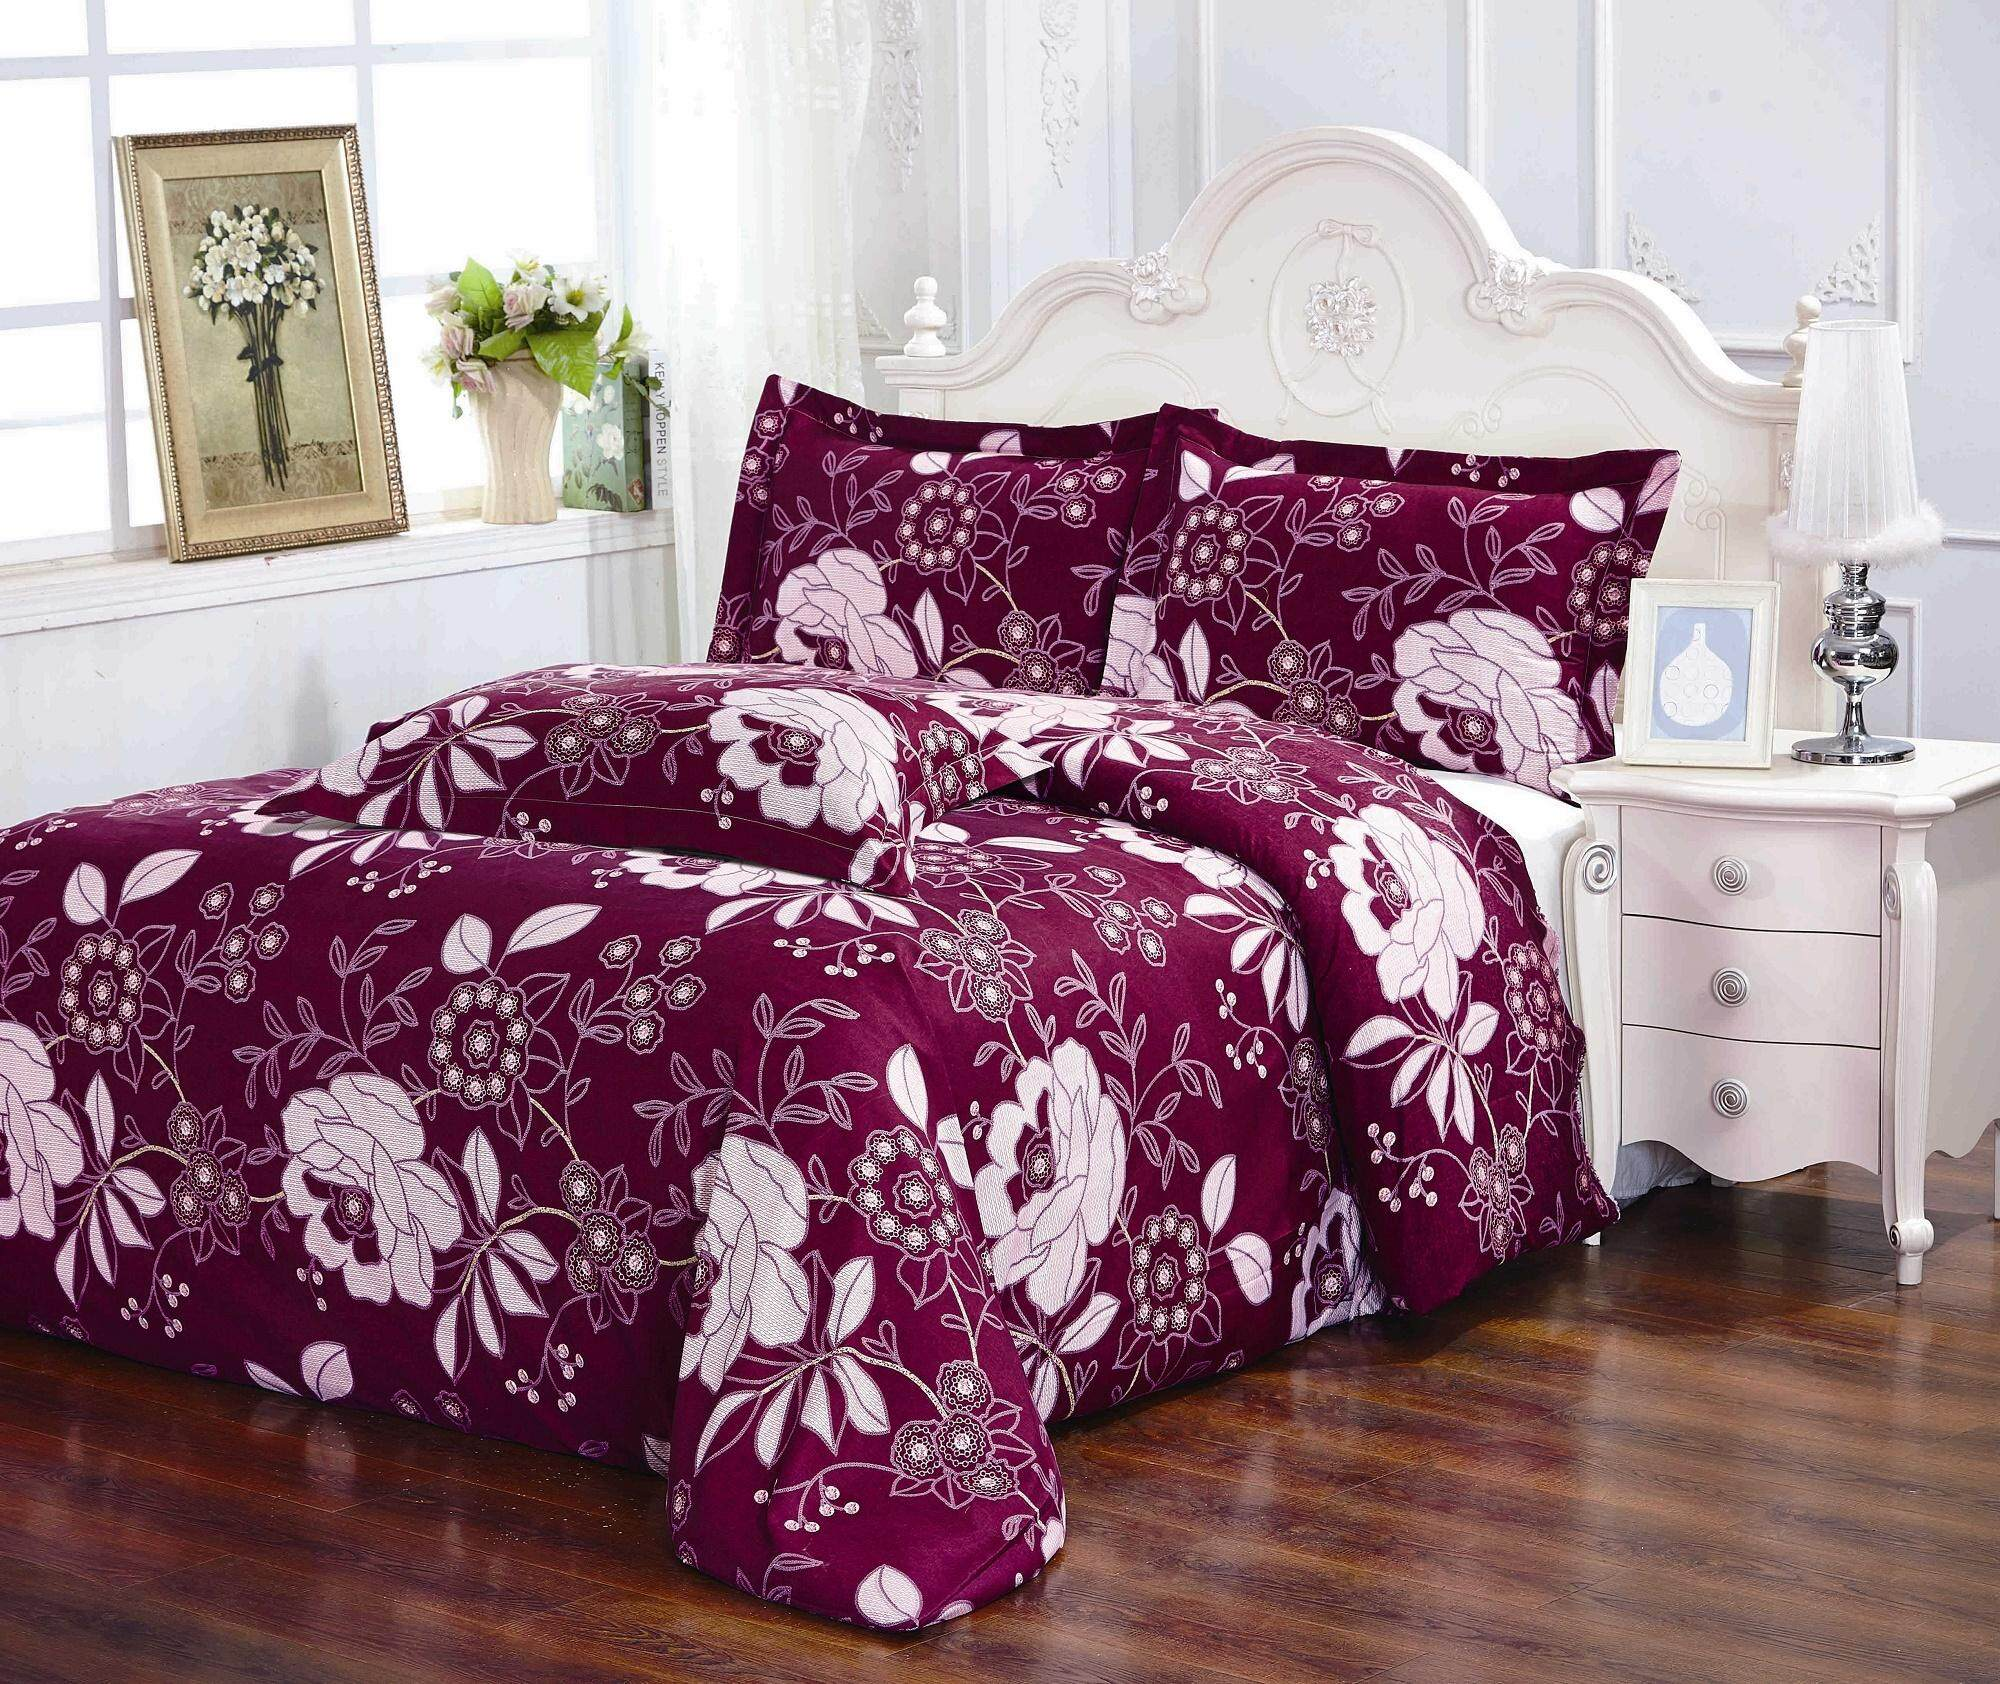 Sprei Lady Rose 160x200 Cars Update Daftar Harga Terbaru Indonesia Seprei Ladyrose 180x200 B2g2 Alila Remy Mayfair Fitted Bedsheet Set Summer Queen Rm39 And King Rm42